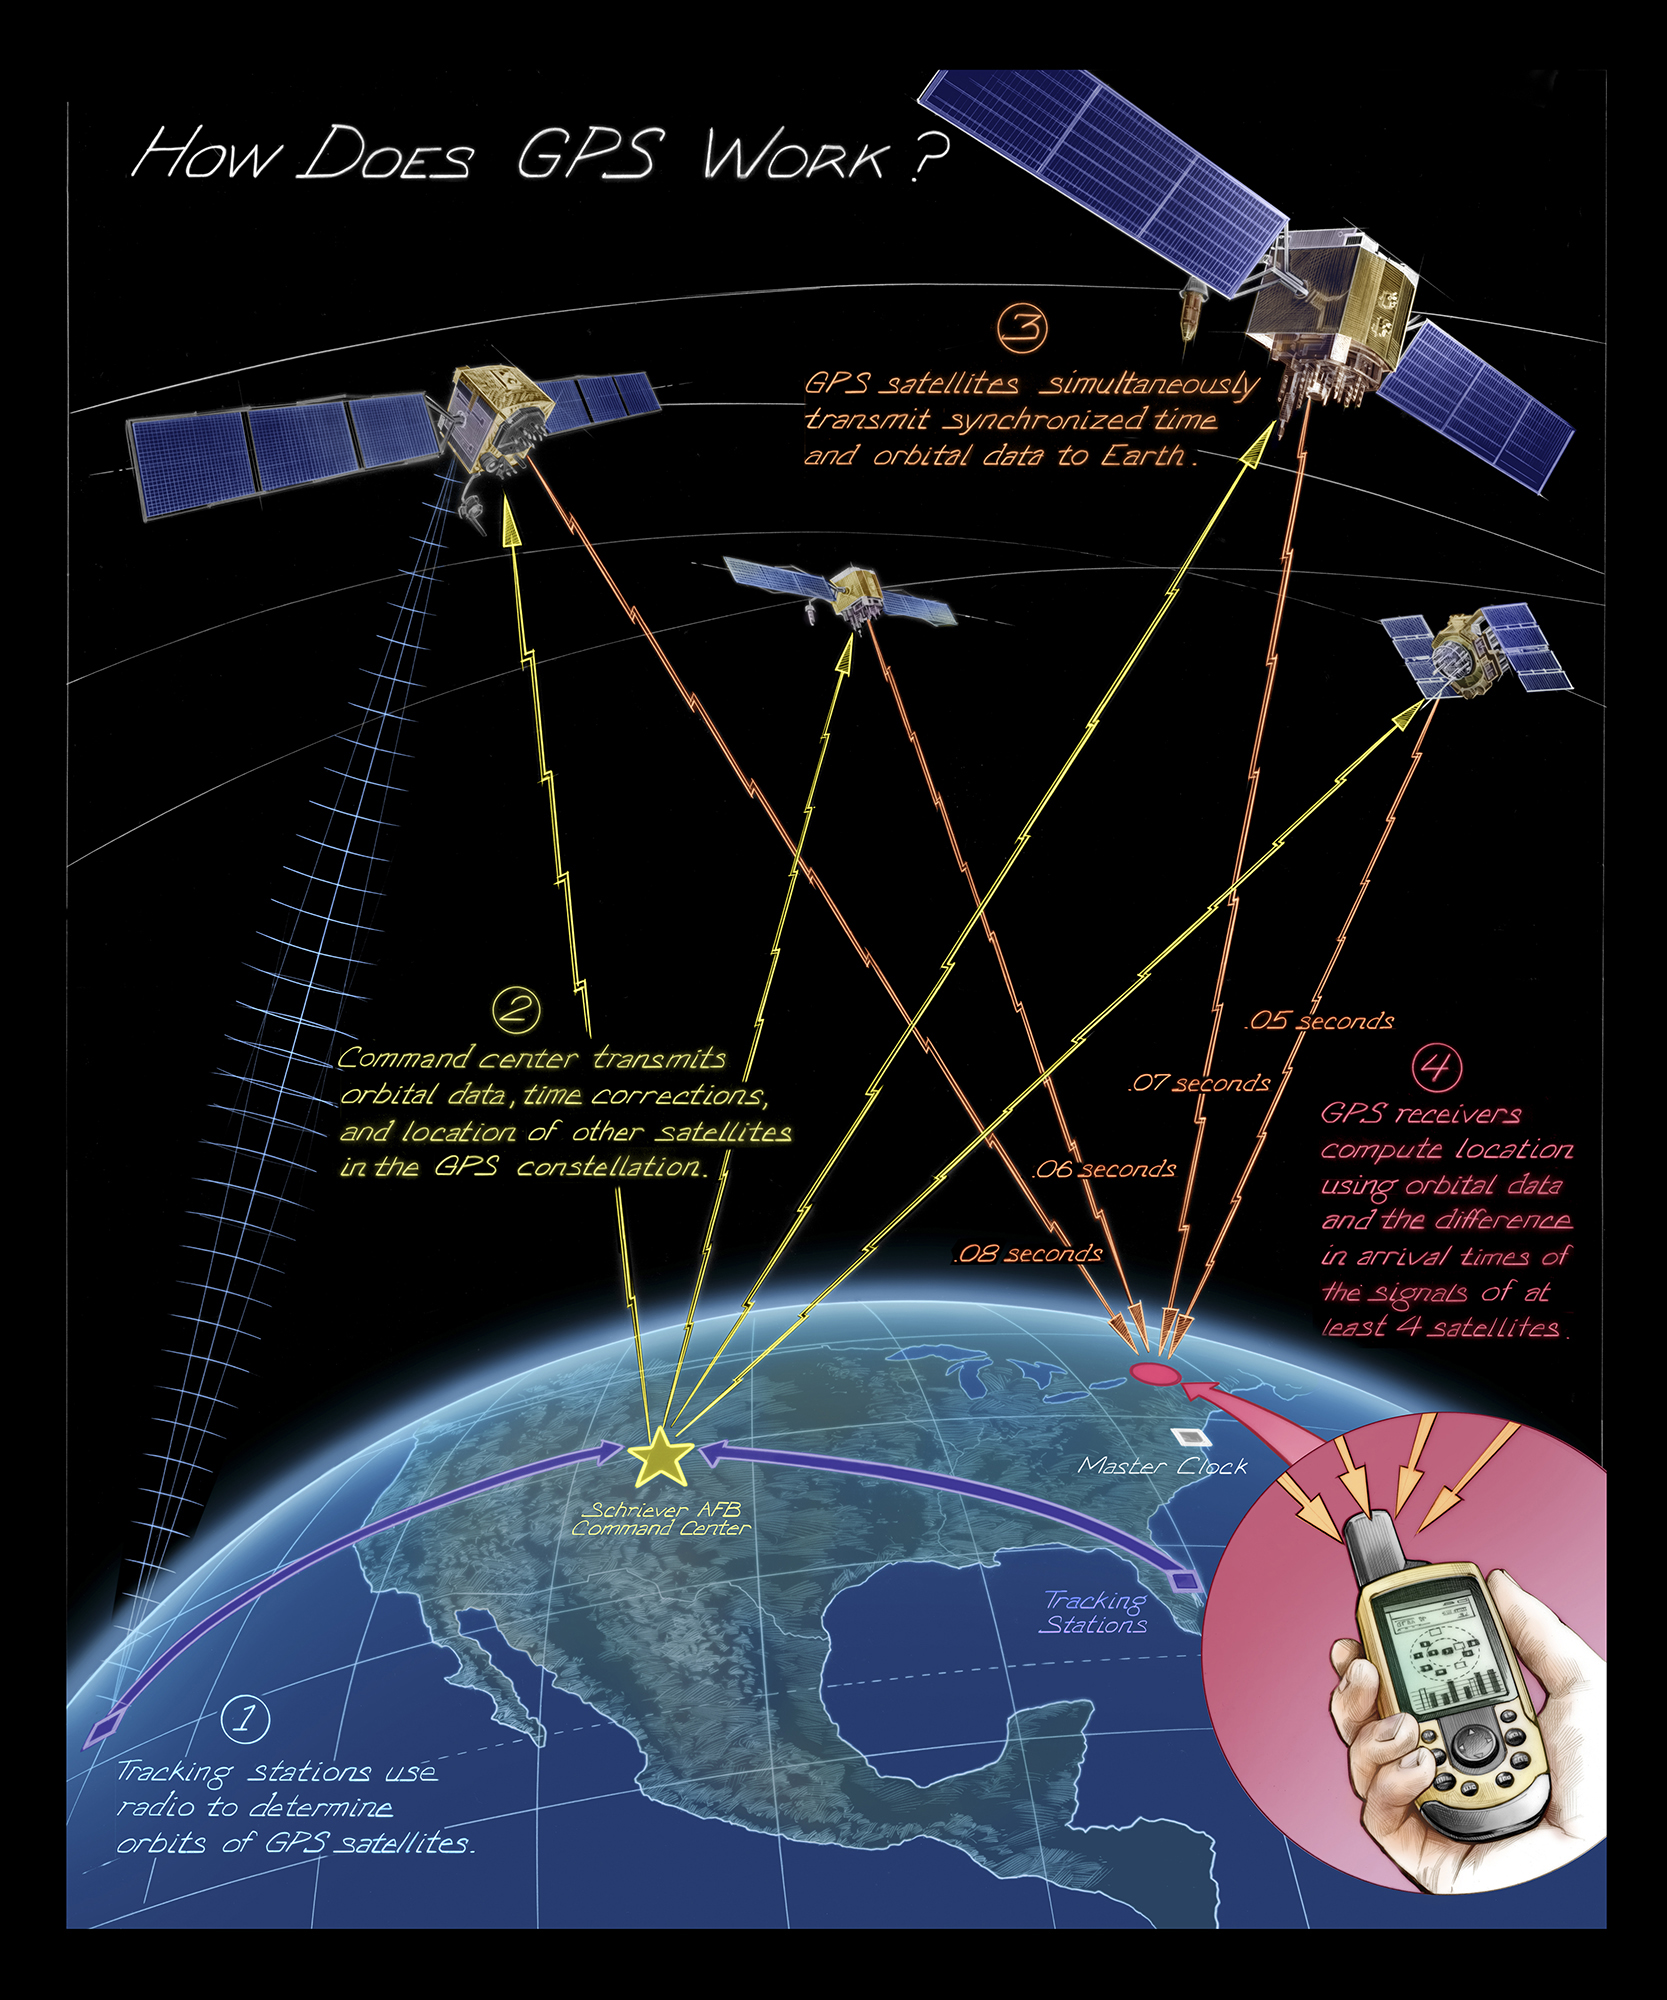 global positioning system The global positioning system is a constellation of 25 or more department of defense satellites that orbit the earth approximately every 12 hours the position and .